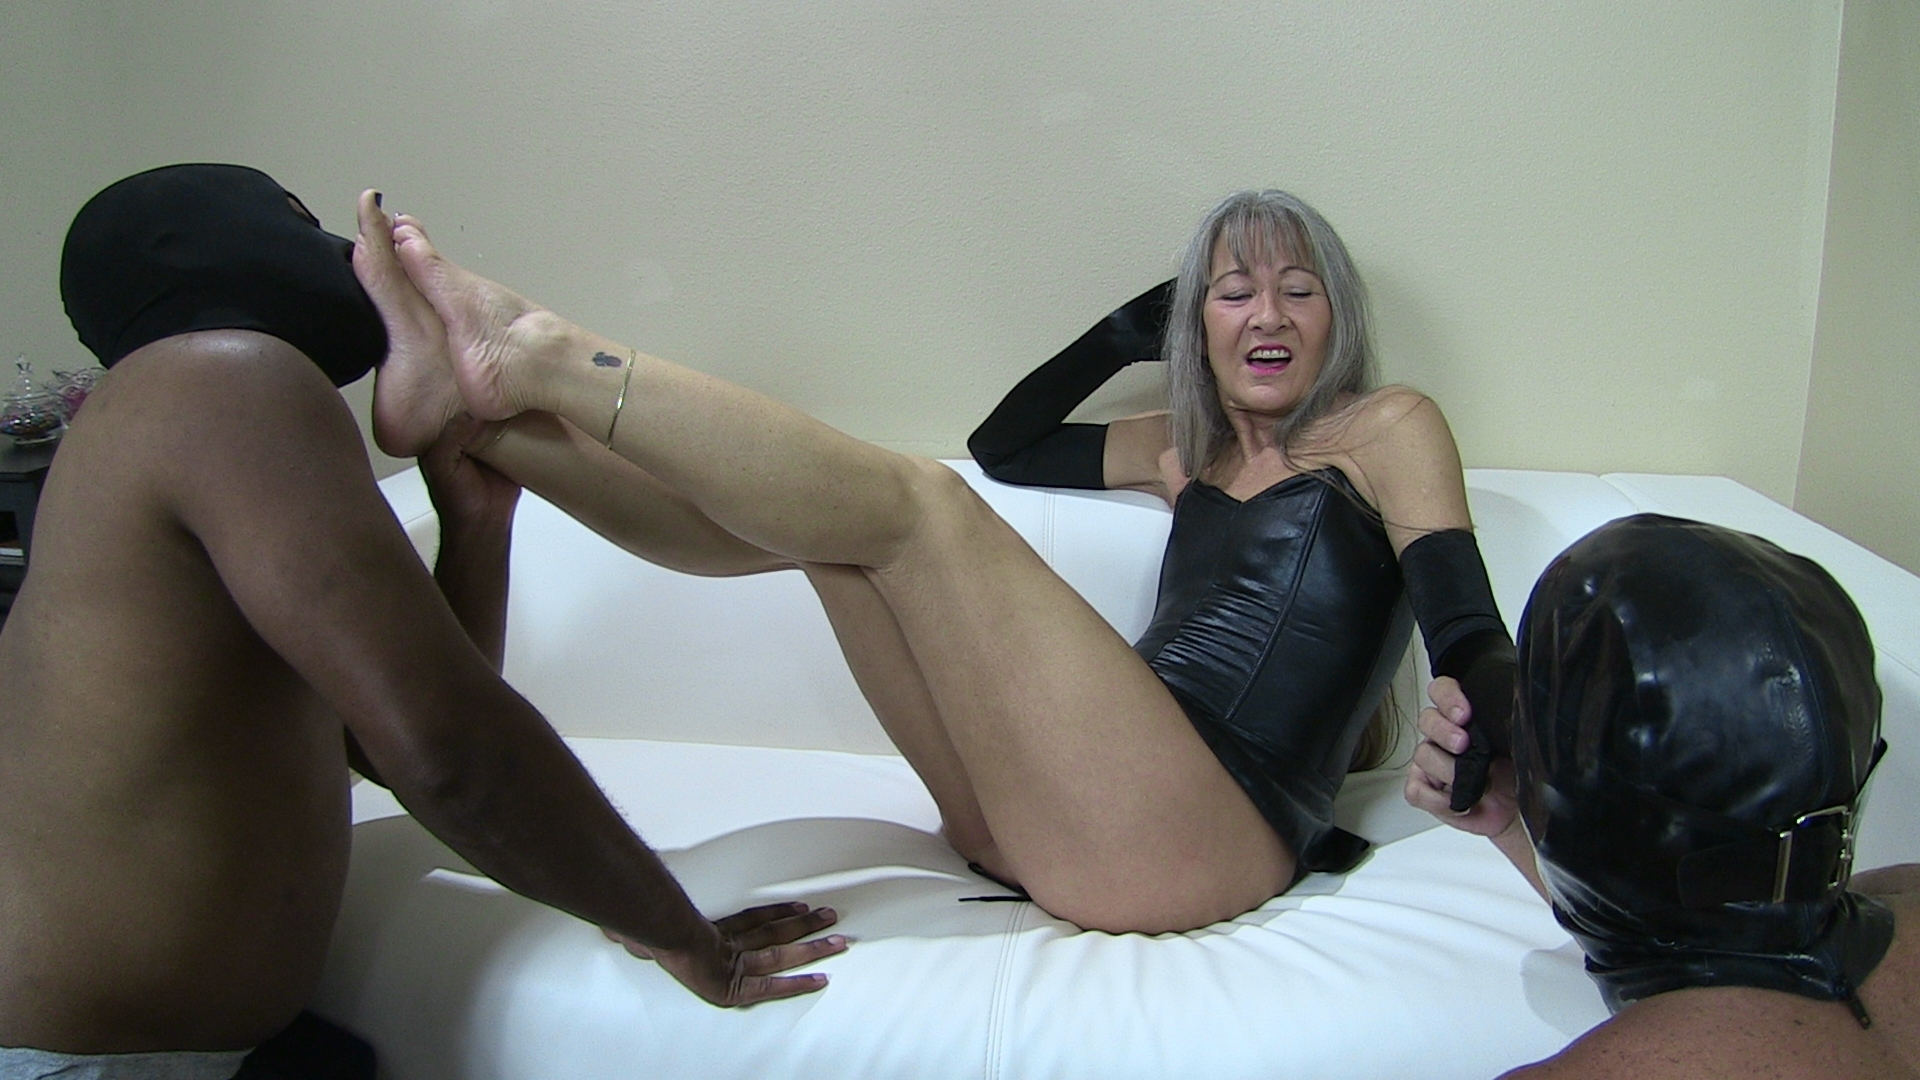 Worship my feet or i039m telling 5